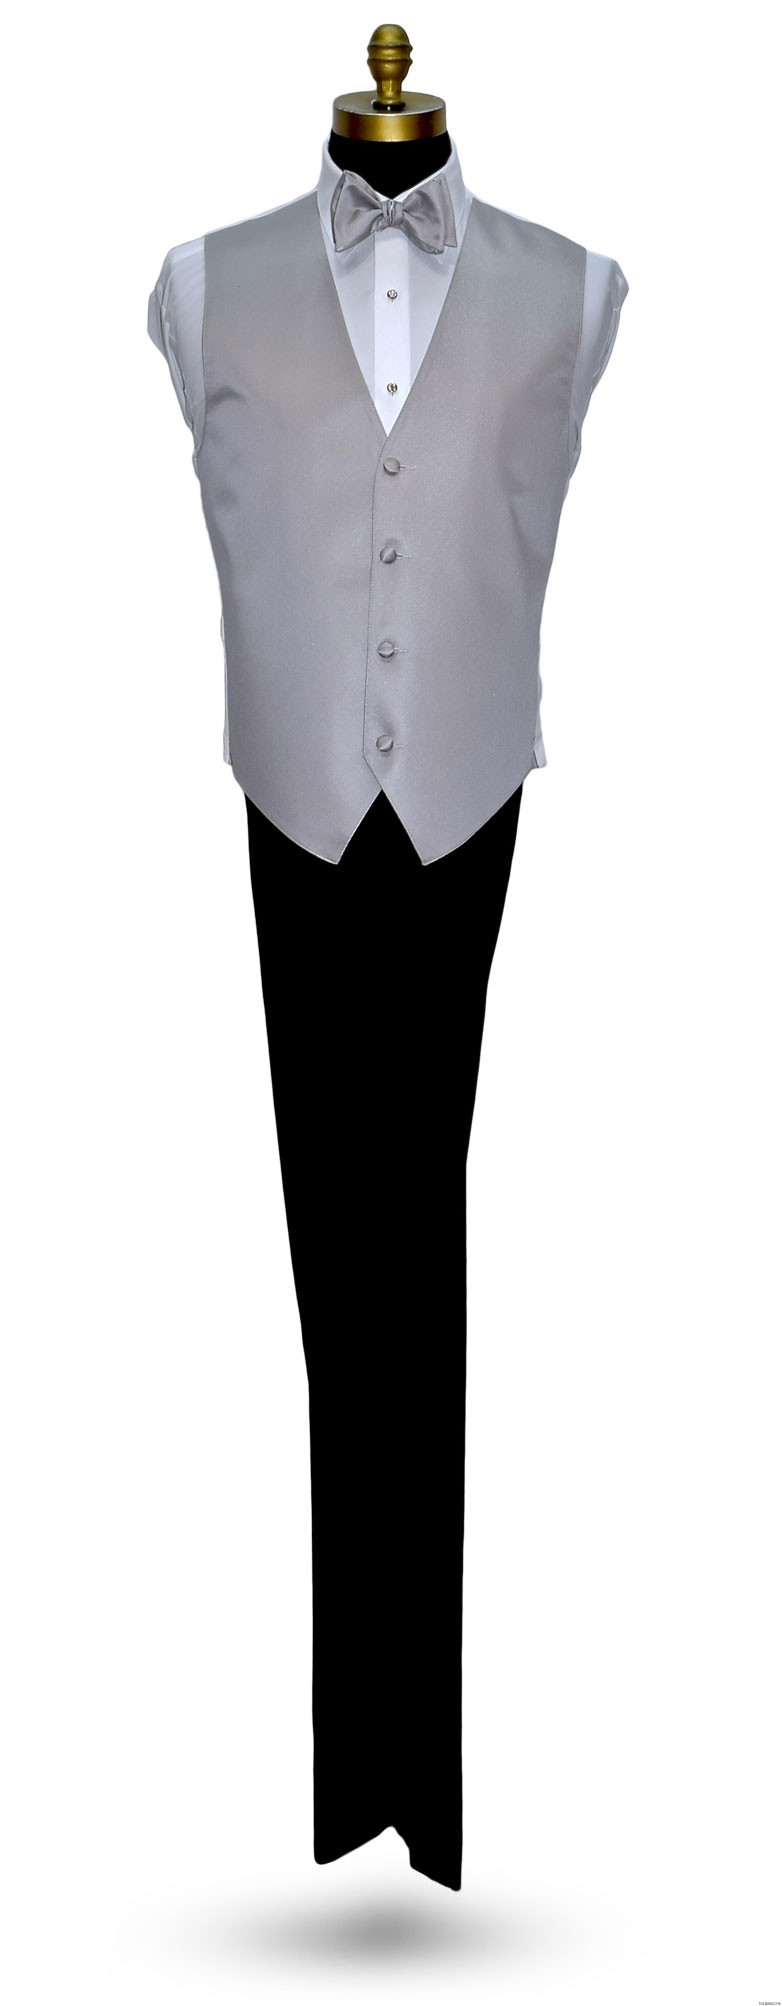 moonlight gray tuxedo vest and bowtie with black tuxedo by San Miguel Formals